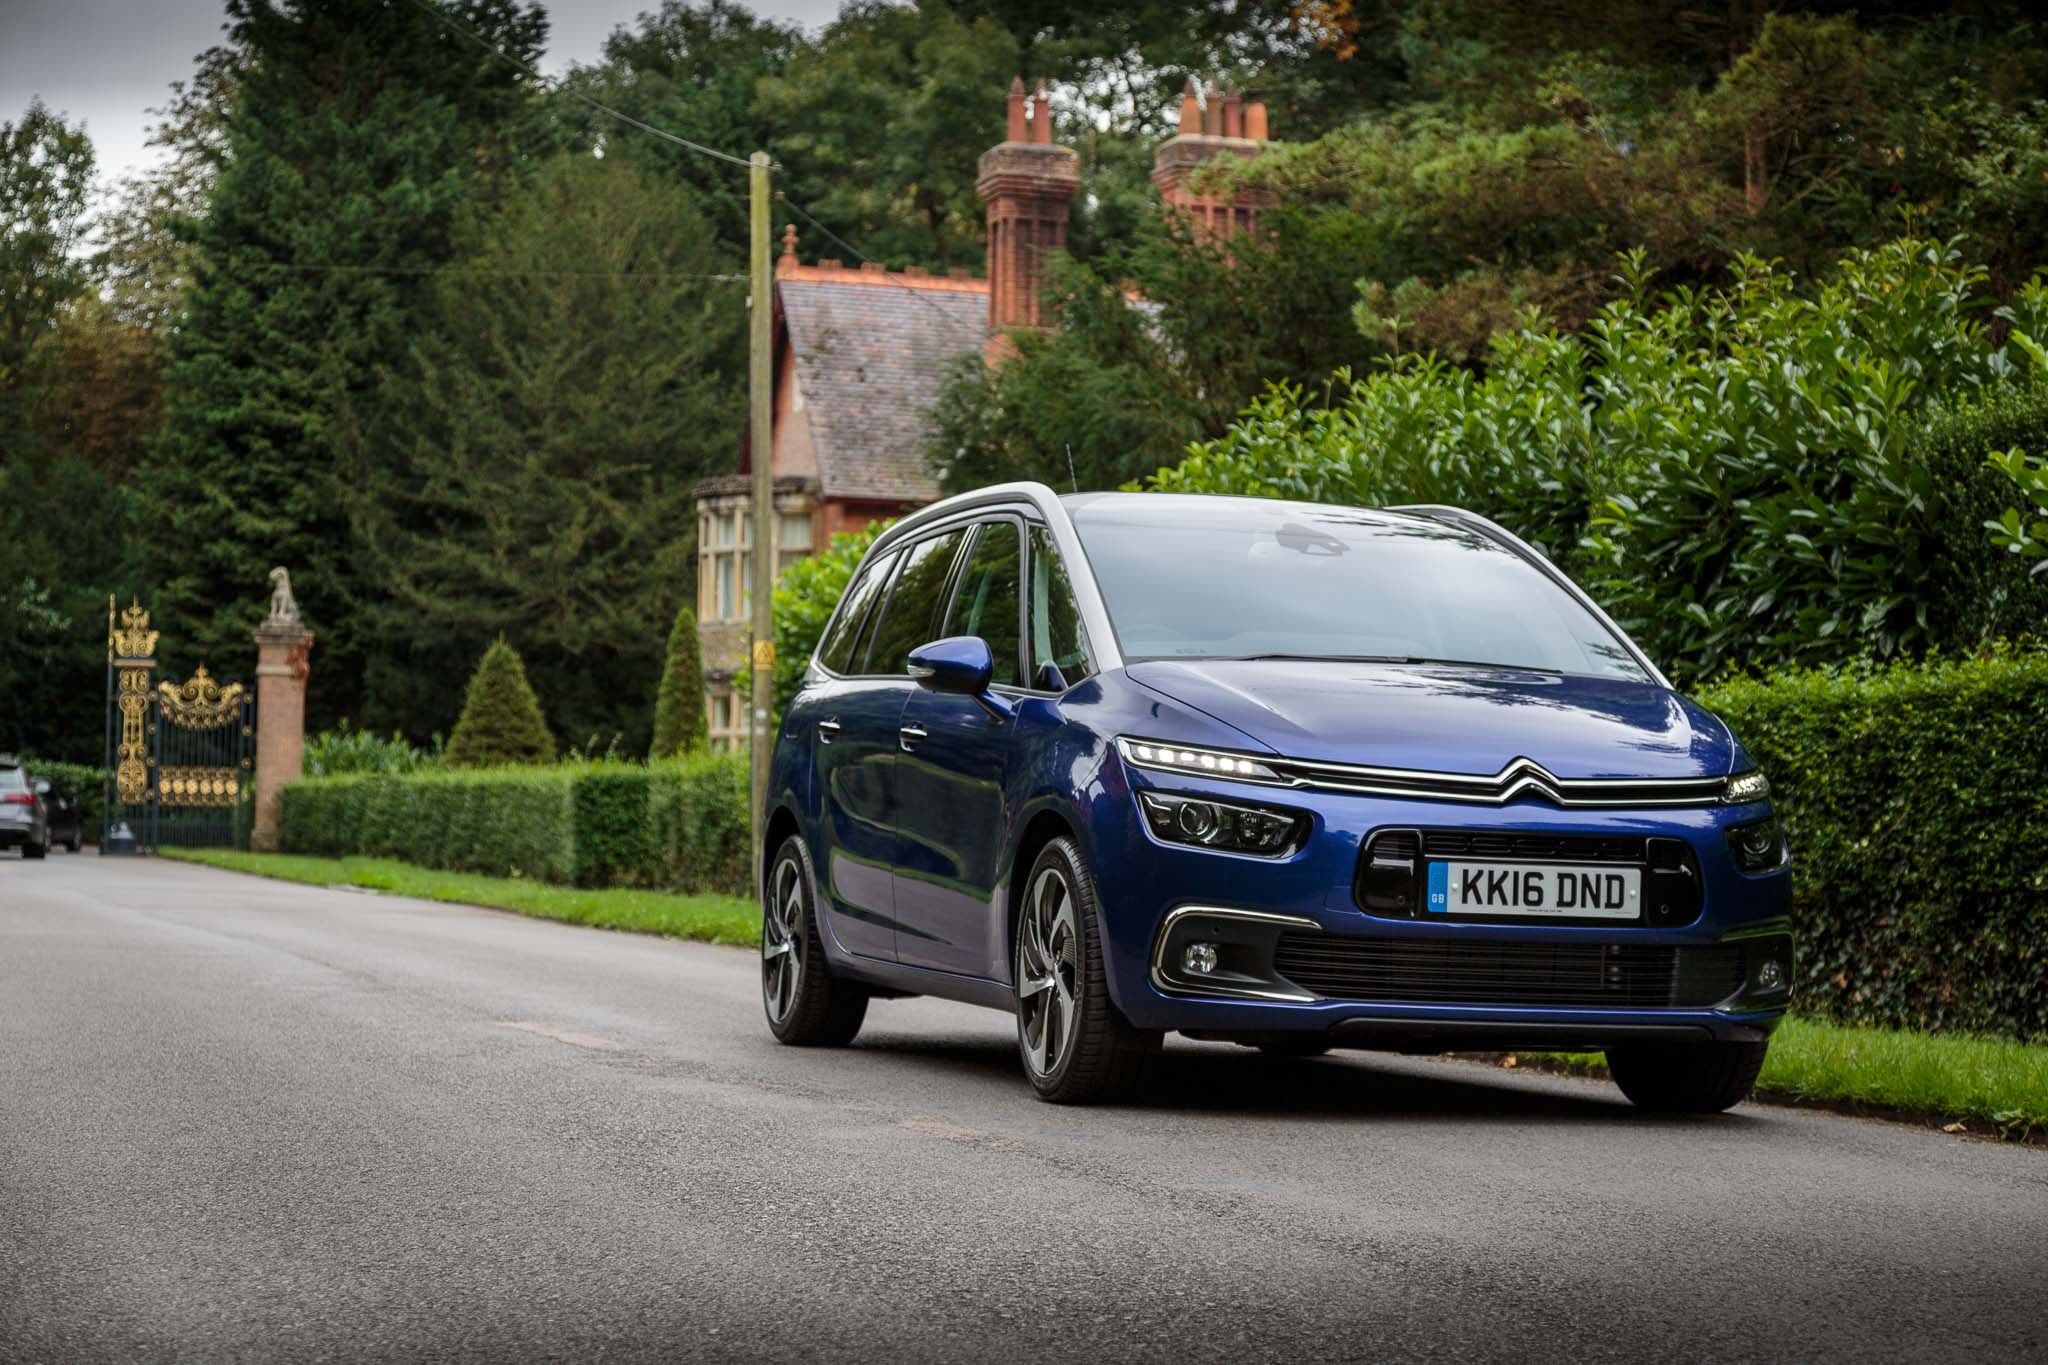 Agribank: 2016 Citroen C4 Grand Picasso Review